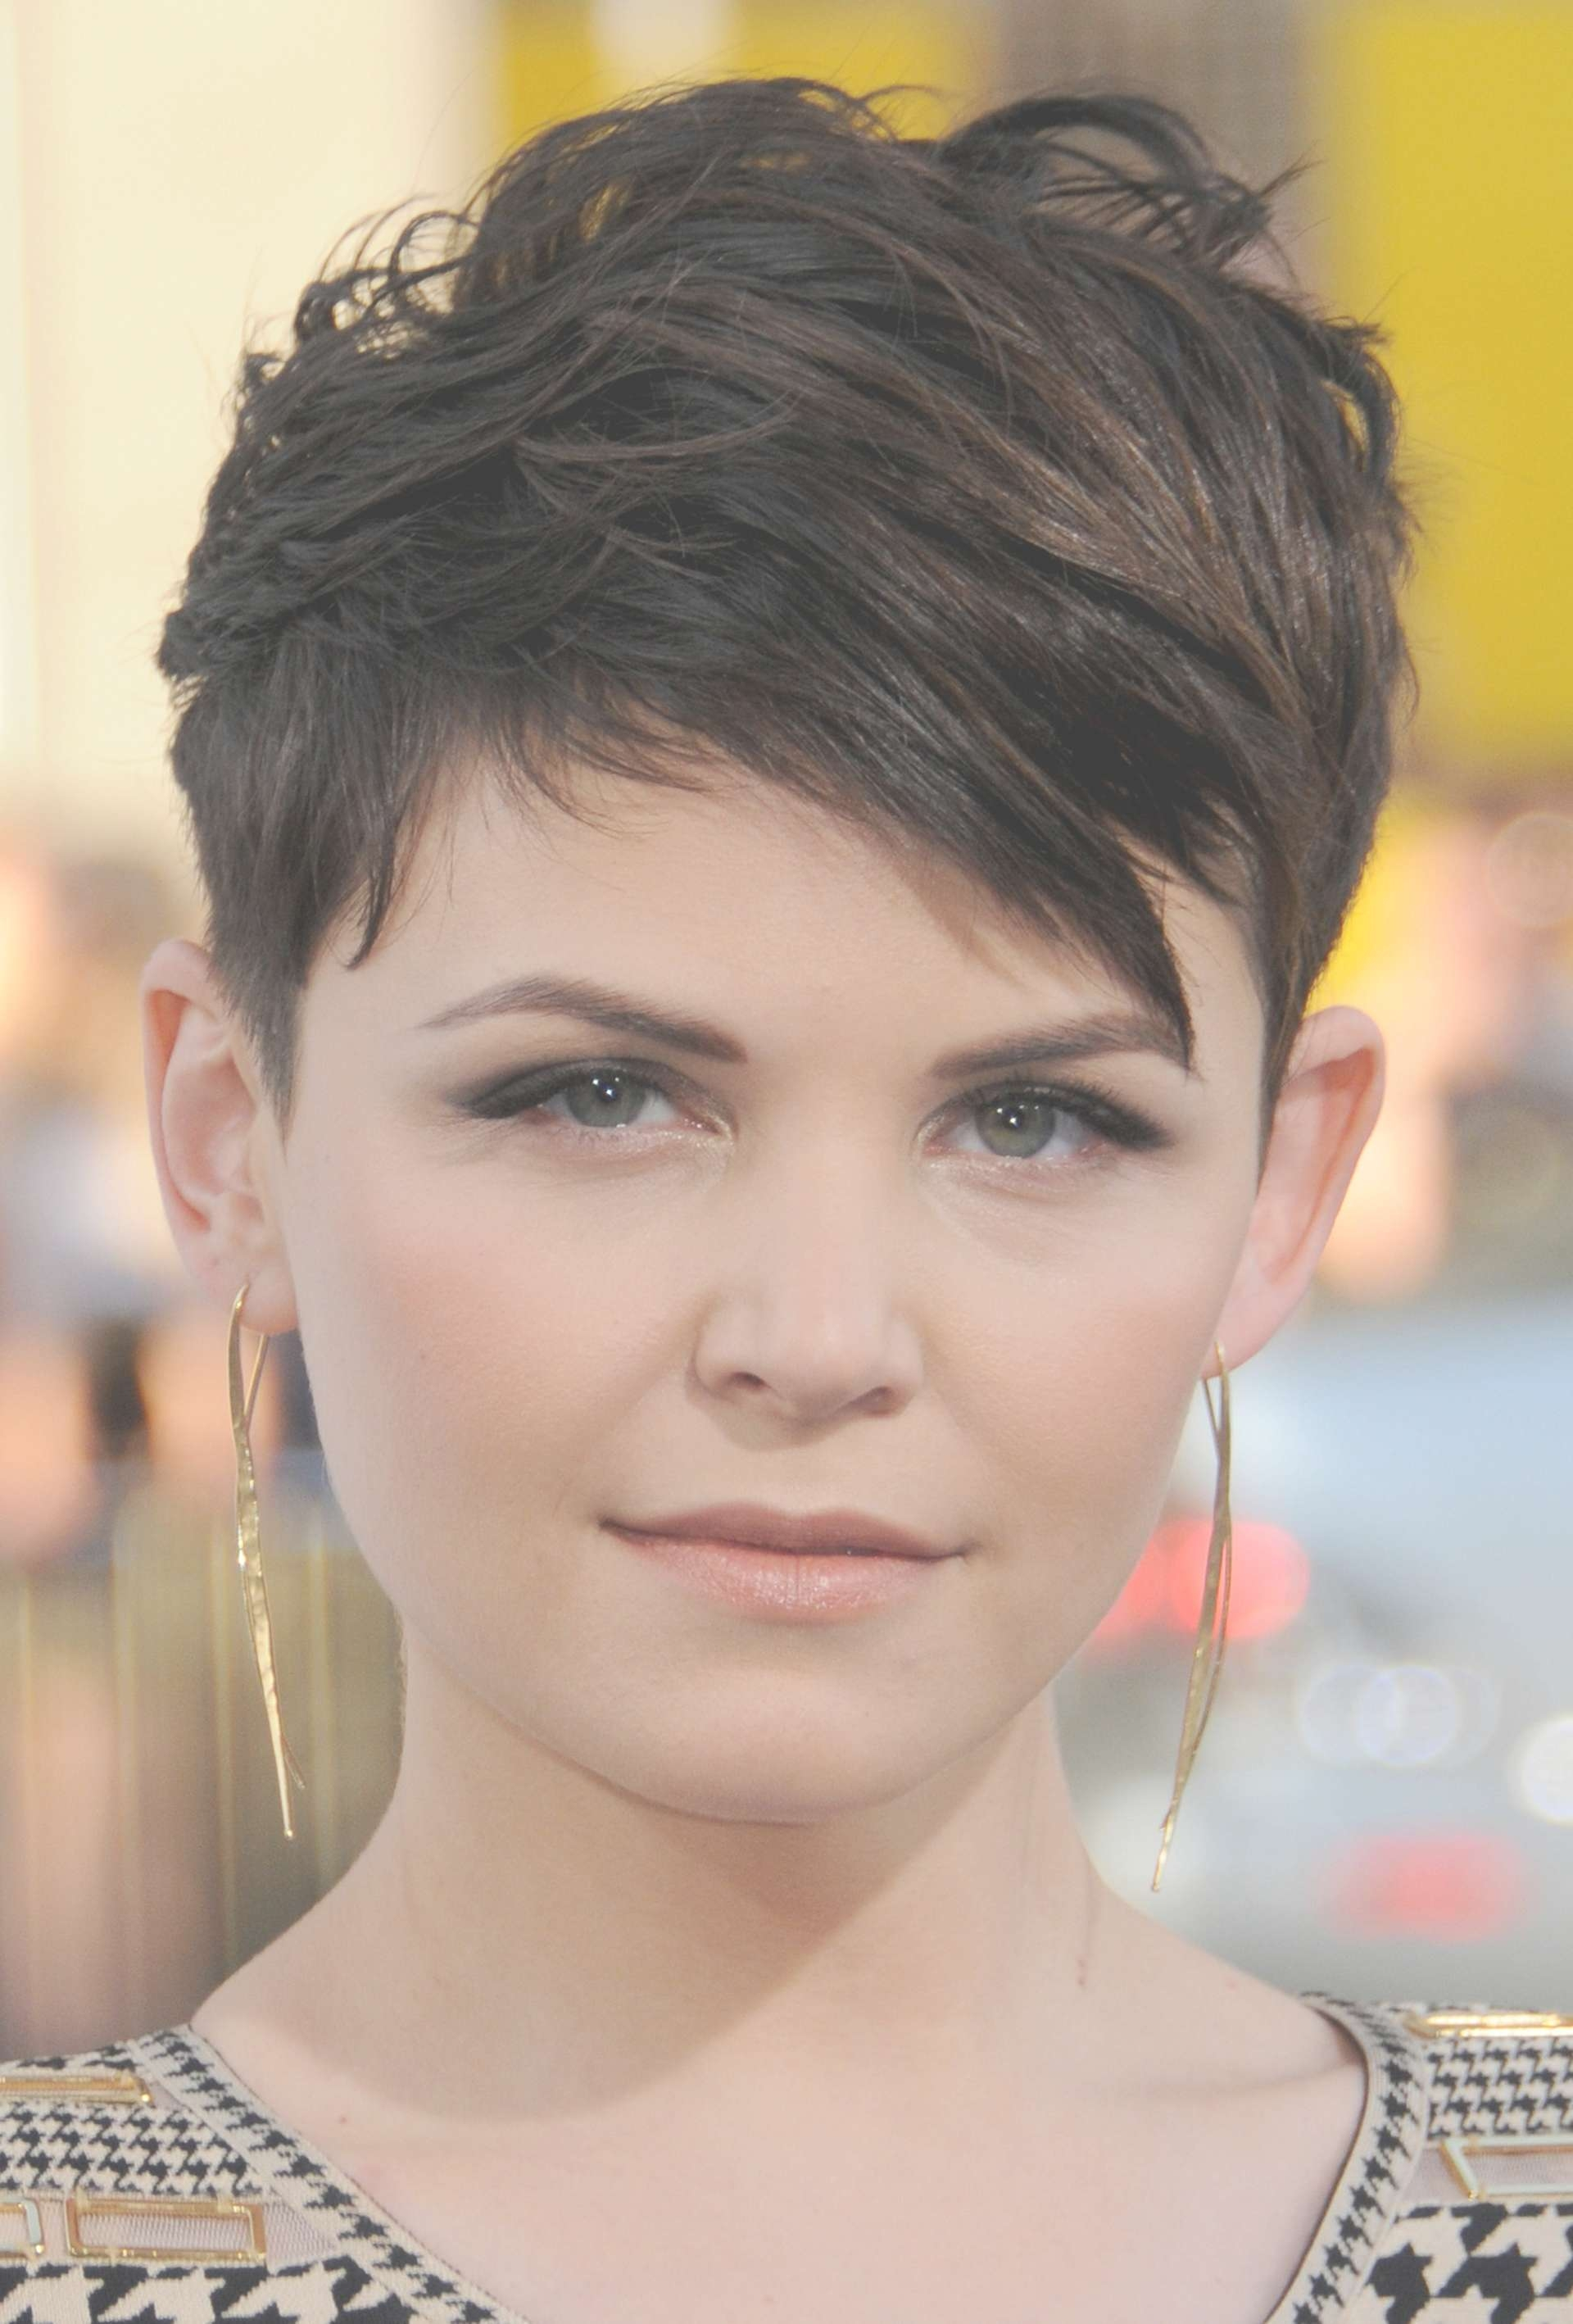 Ginnifer Goodwin Short Pixie Hairstyle – Pixie Haircuts For Short Inside Current Actress Pixie Hairstyles (Gallery 5 of 15)